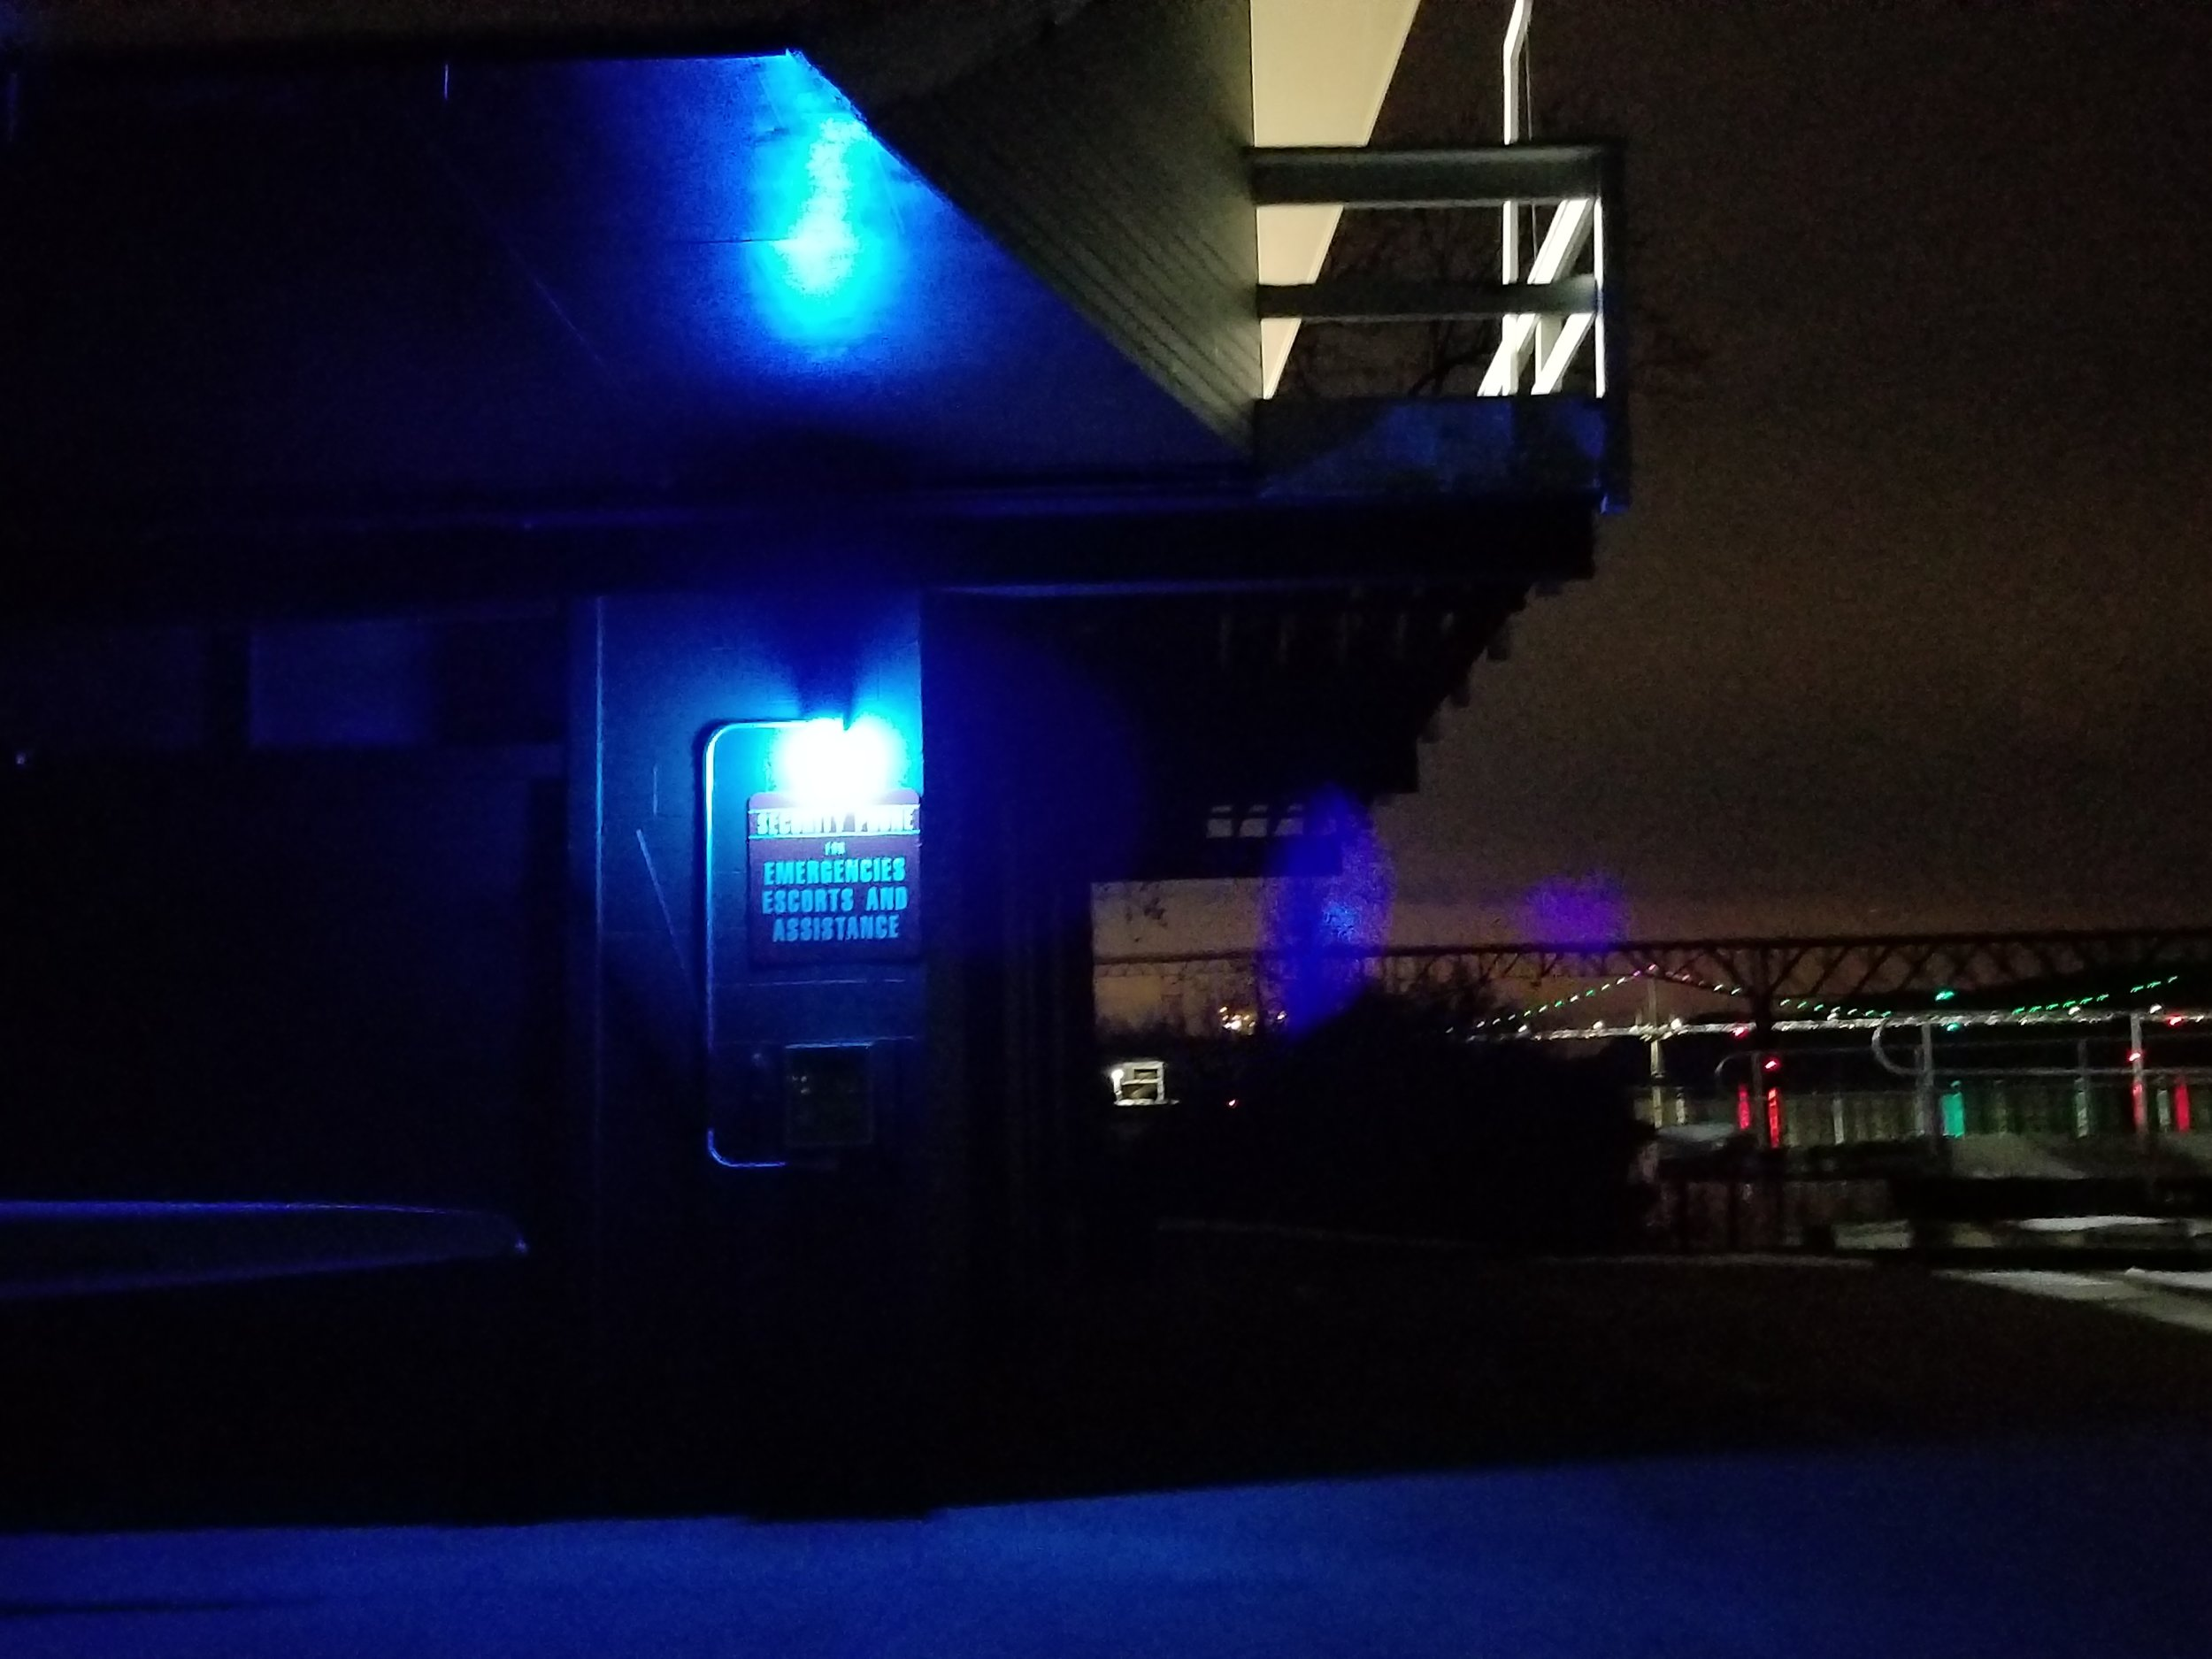 The callbox is not visible in its own blue-light and darkness.